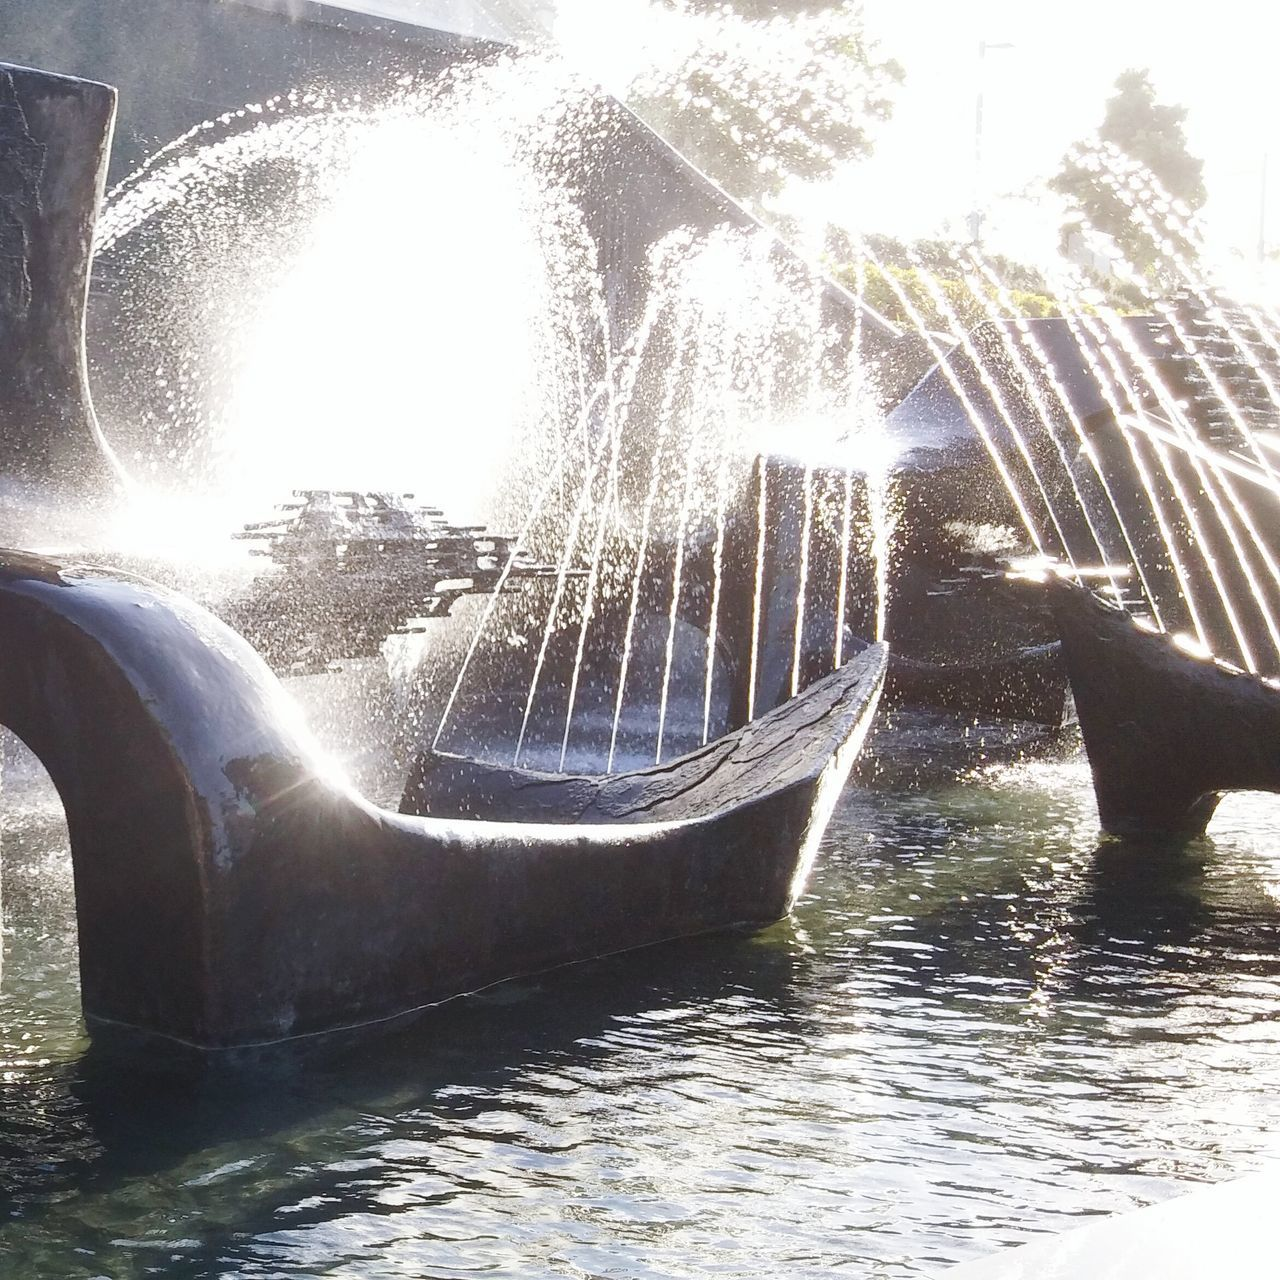 Fountain Newcastle NSW, Australia Newcastle Water Spray Sculpture Civic Park Day Outdoors No People Nature Pond Ripples The City Light